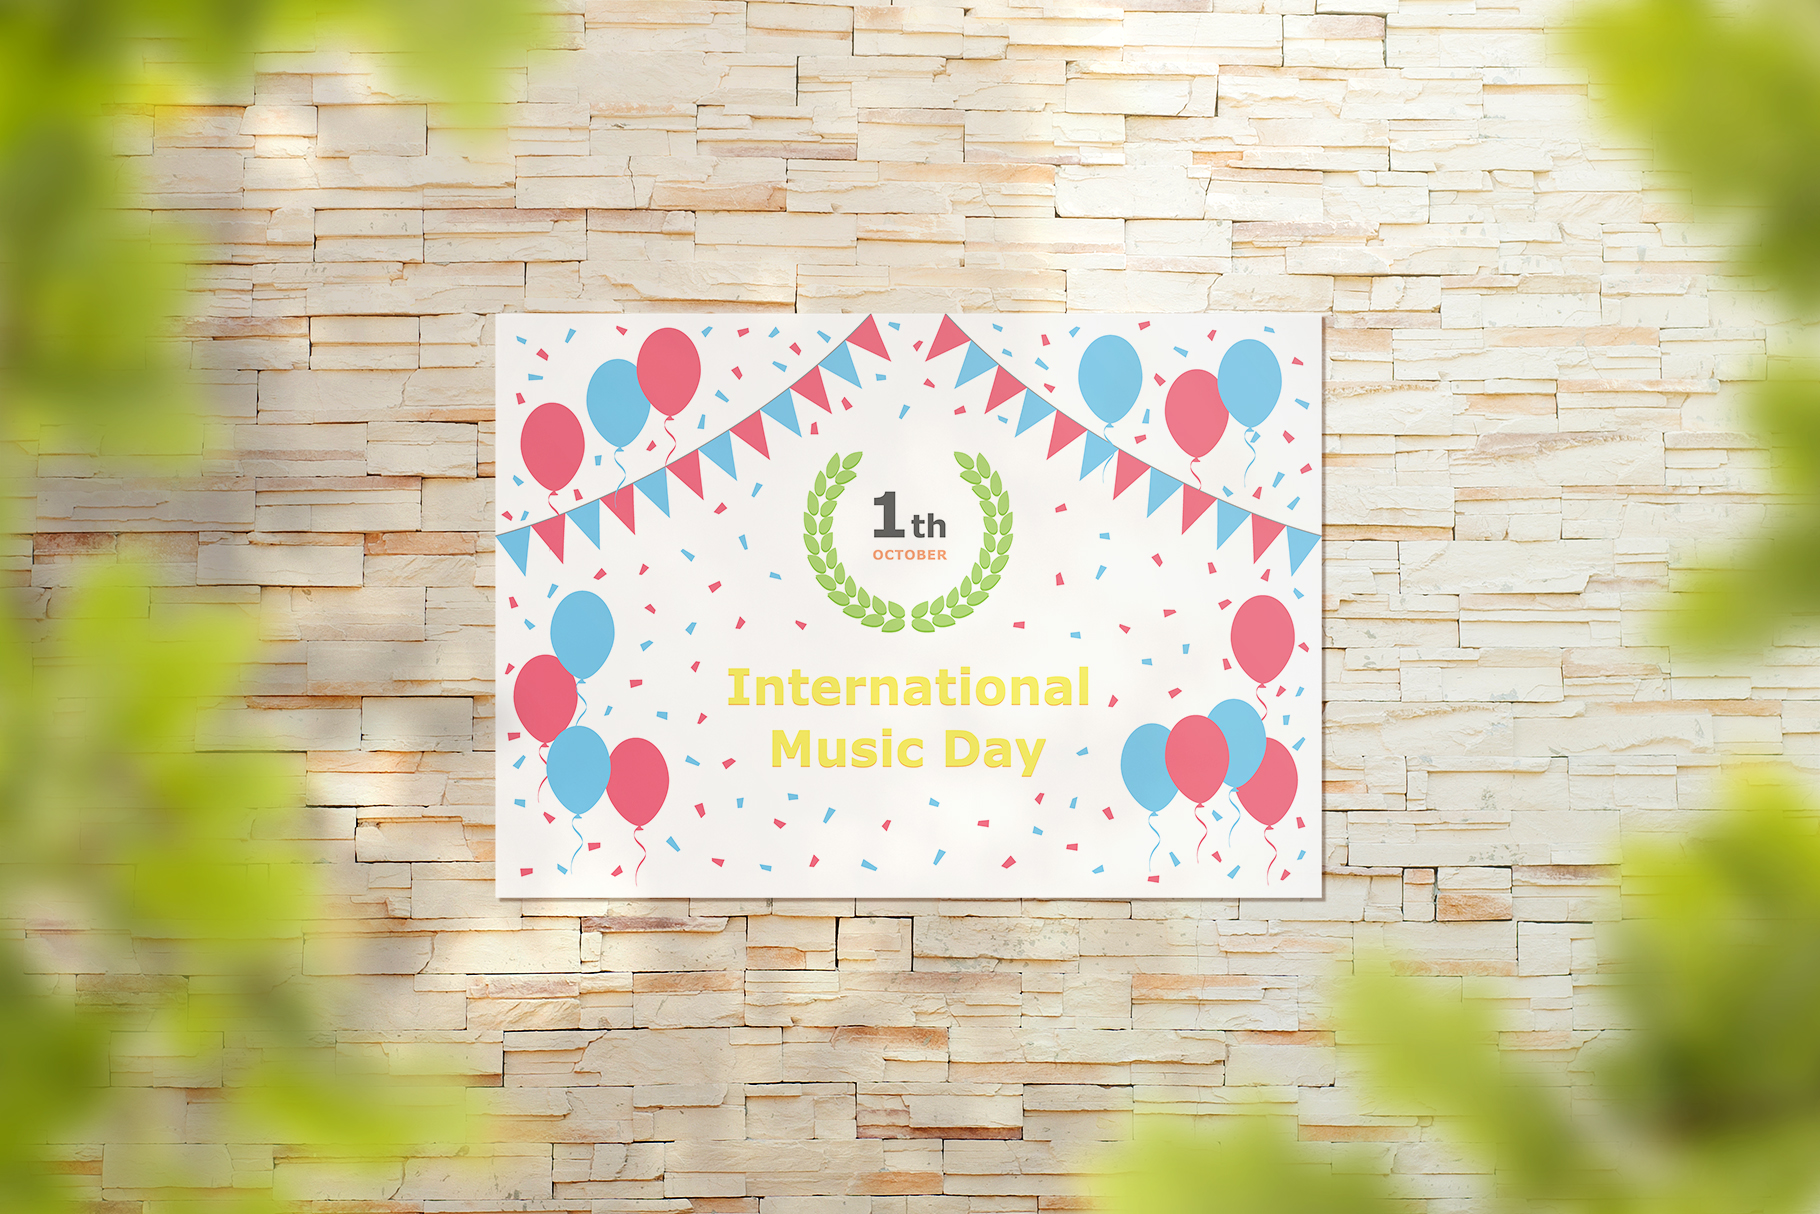 International Music Day - October 1 example image 4